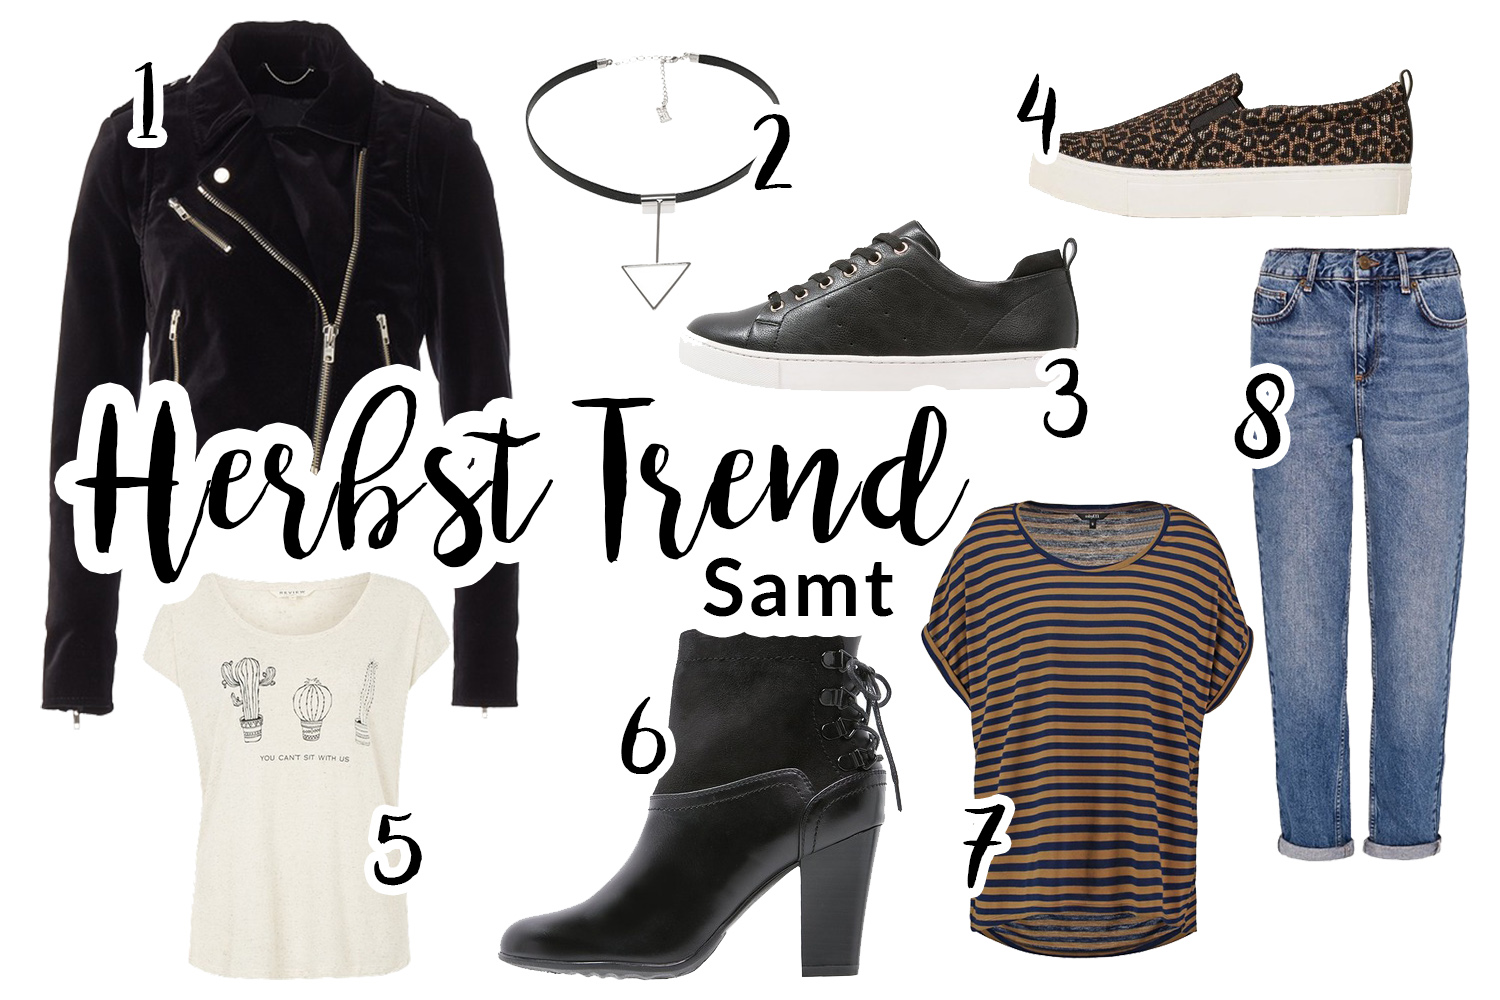 Collage, Outfit, Herbst Trend, Samt kombinieren, Samt, 2016, Mode, Fashion, Mode Blog, Tipps, Finde deinen Stil, Influencer, Beauty Blog, Deutschland, Berlin, Advance Your Style, advanceyourstyle